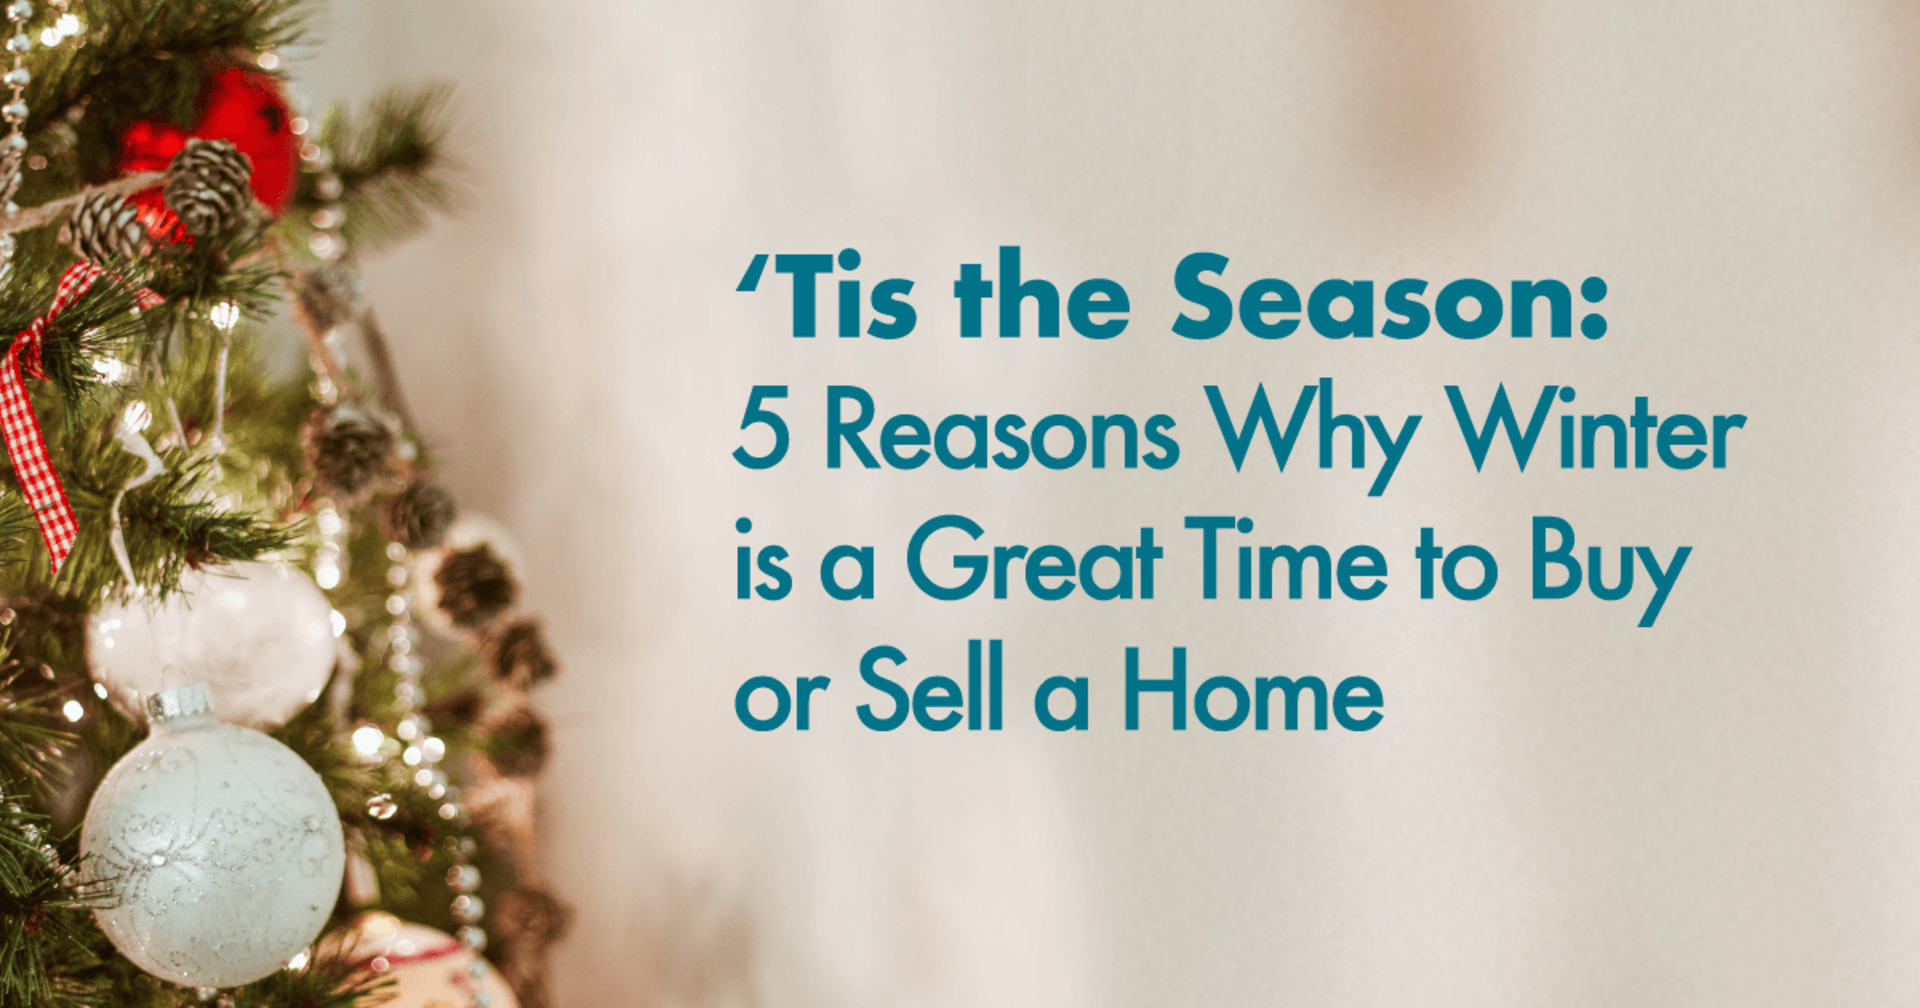 5 Reasons Why Winter is a  Great Time to Buy or Sell a Home